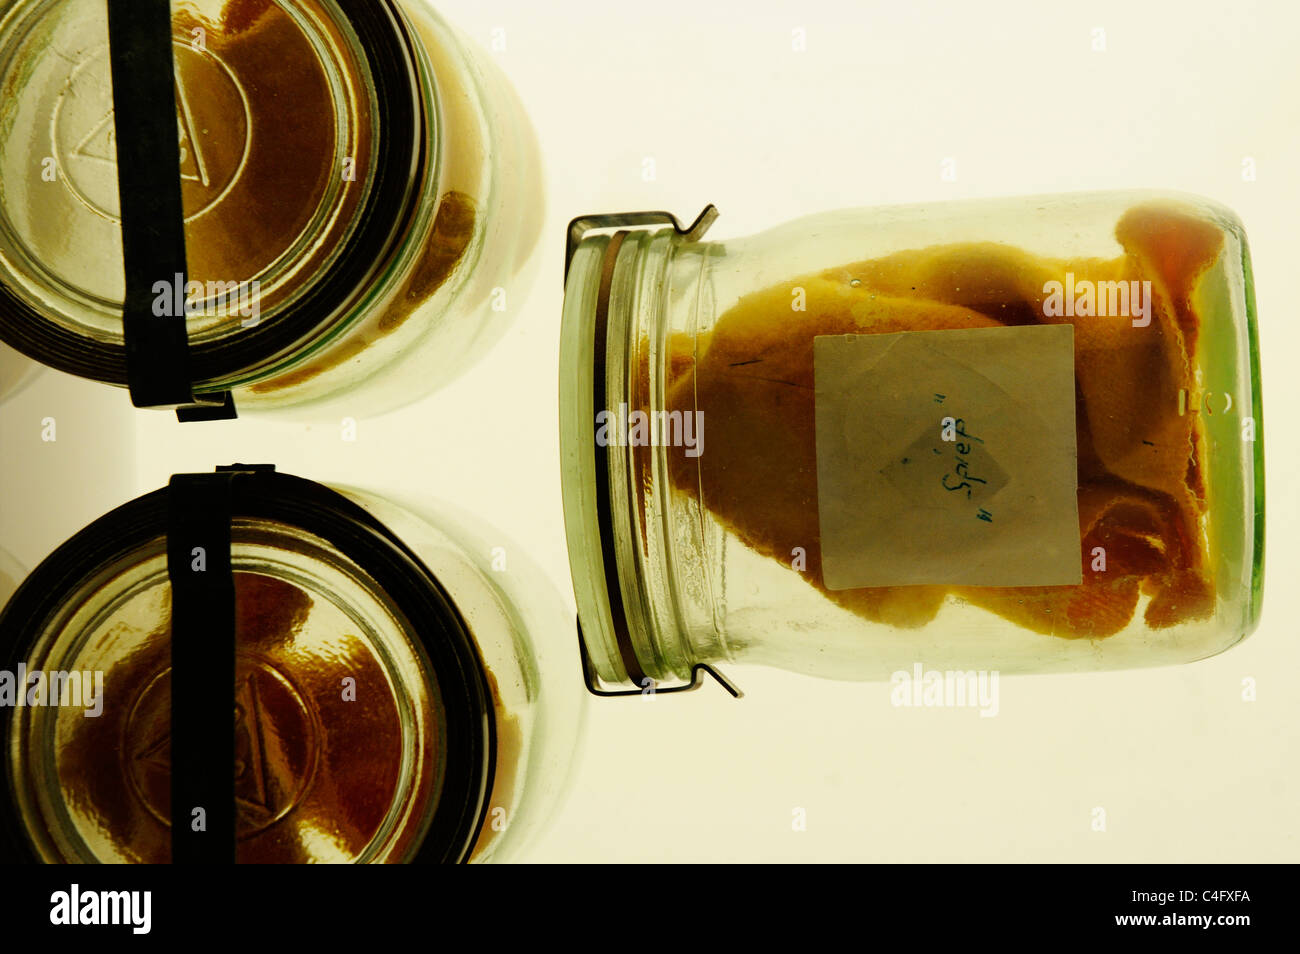 Human sweat smell samples in glass jars in the stasi museum in East Berlin - Stock Image